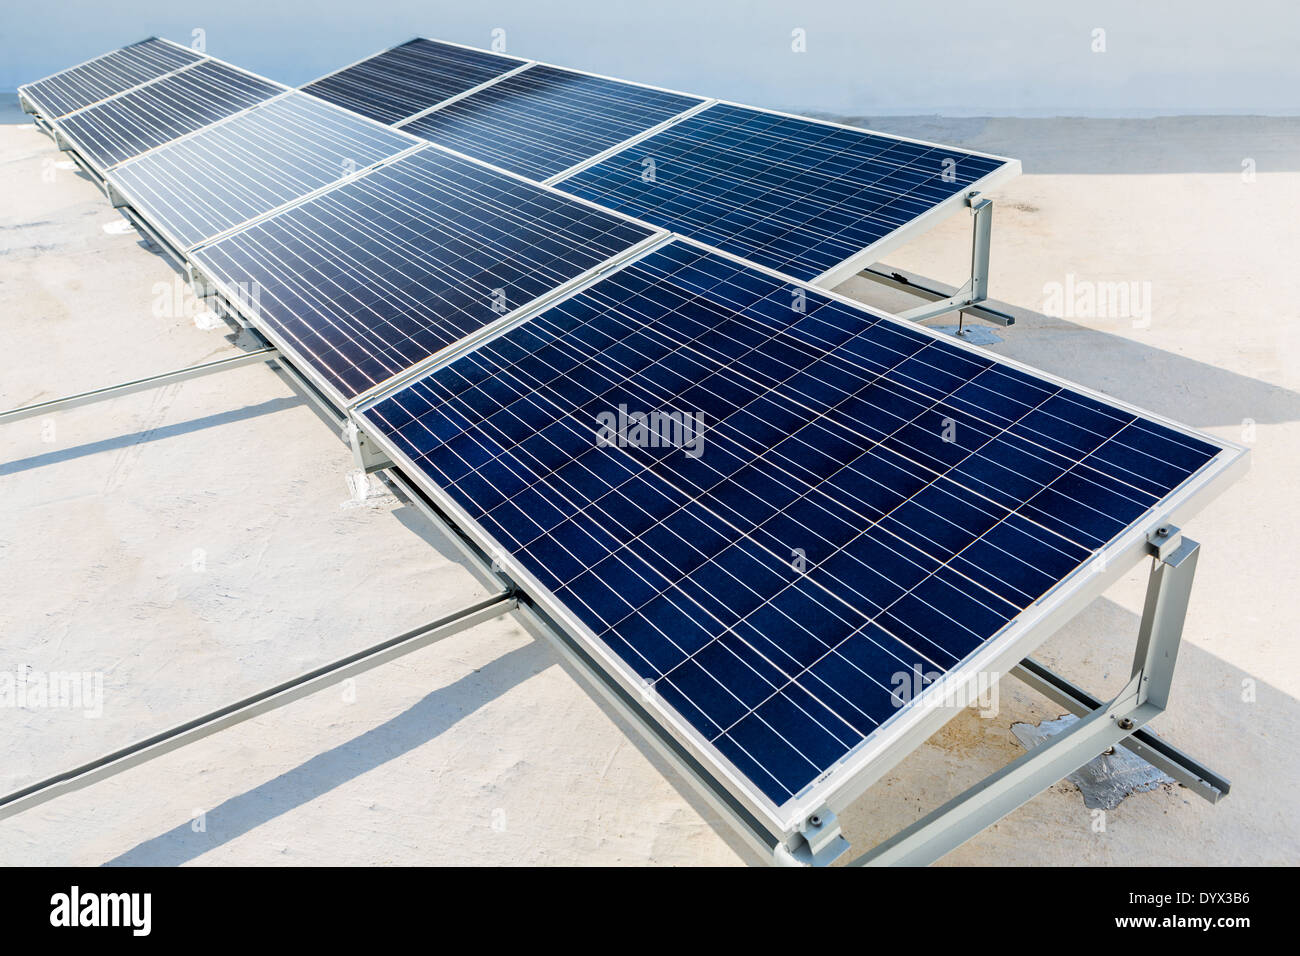 Solar panels standing on a rooftop under a bright sunny day - Stock Image